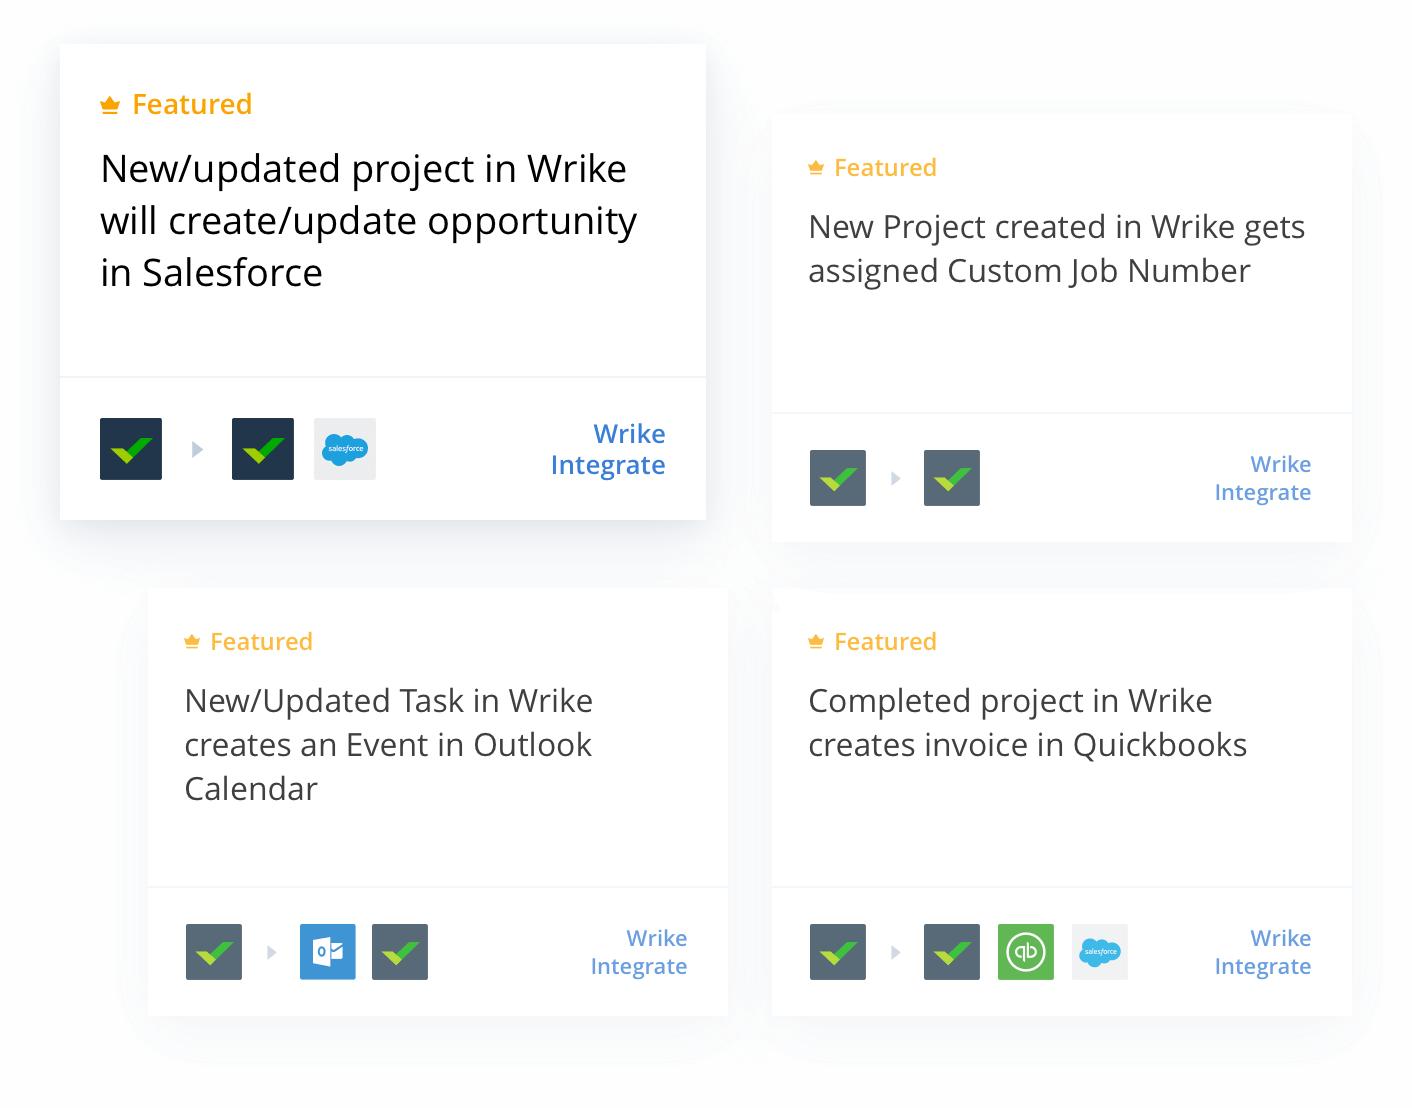 Wrike Integrate - An Integration and Automation Add-on